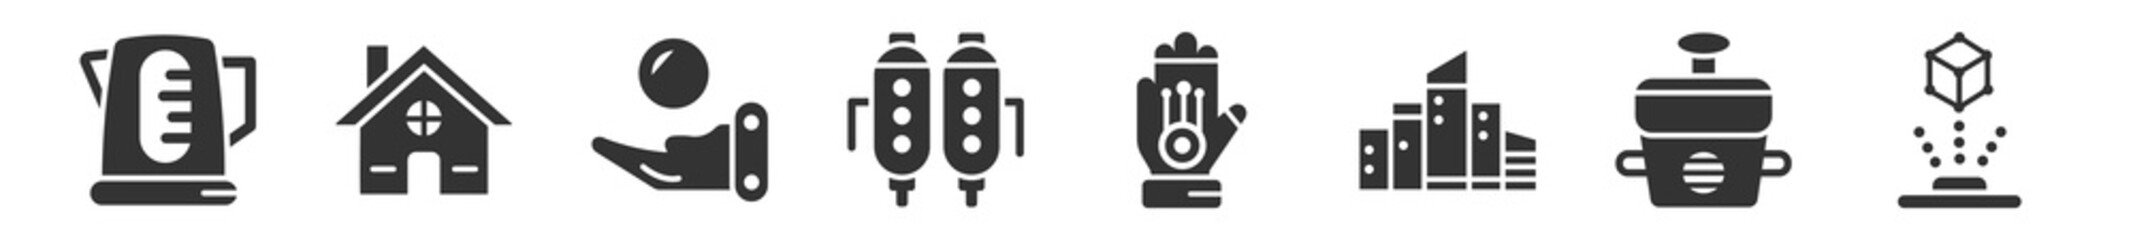 Obraz filled set of future technology icons. glyph vector icons such as kettle, residential, telekinesis, jetpack, wi gloves, hologram. vector illustration. - fototapety do salonu